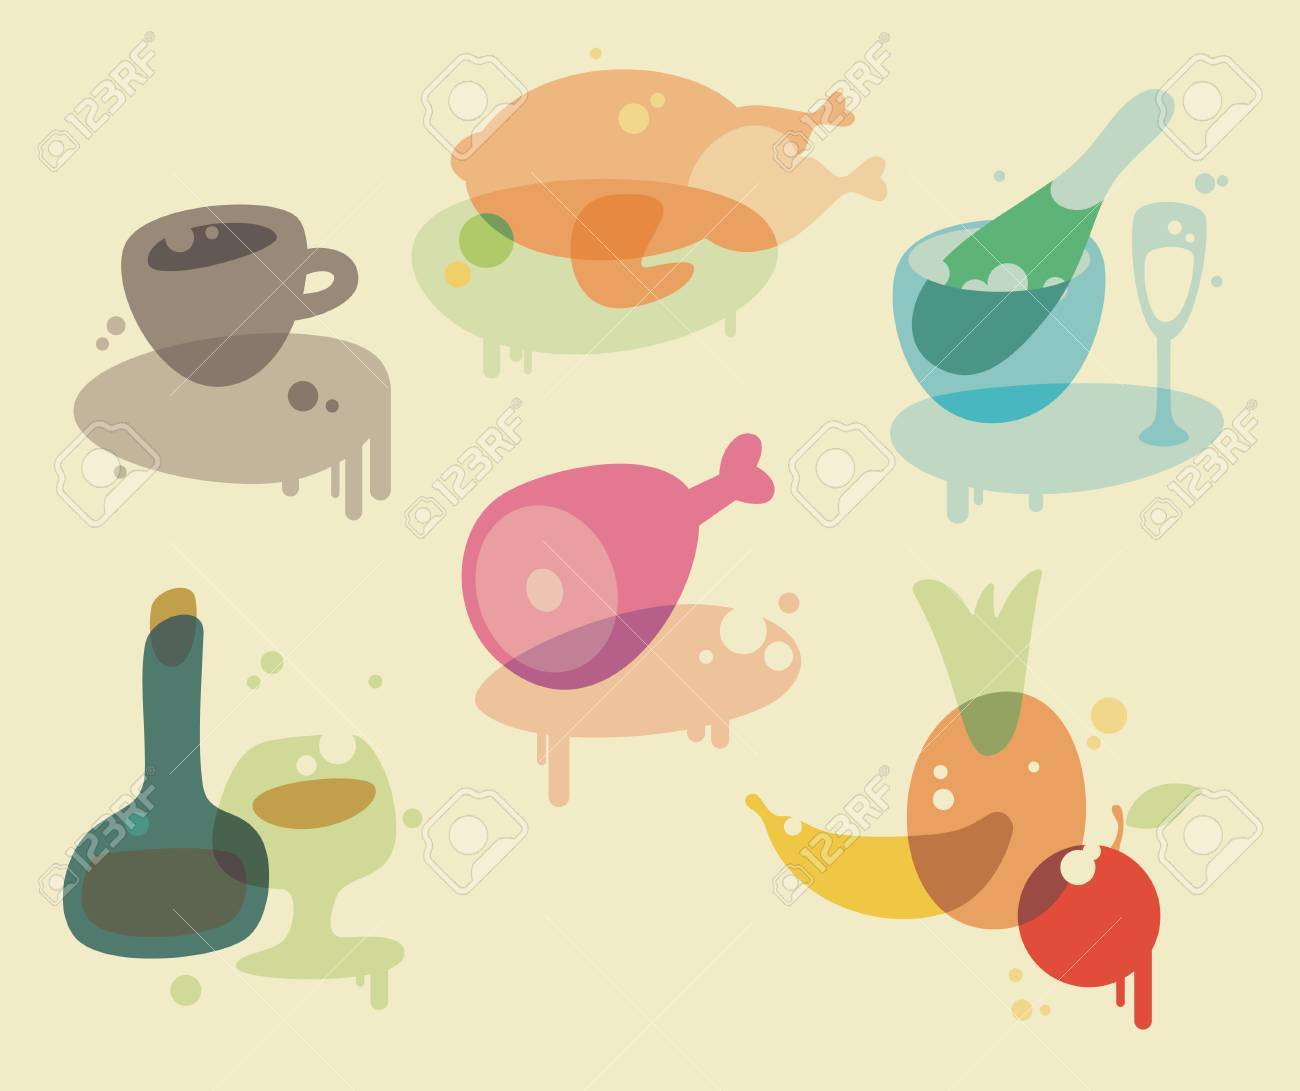 Watercolor food and drink icons, vector illustration. Stock Vector - 4915849